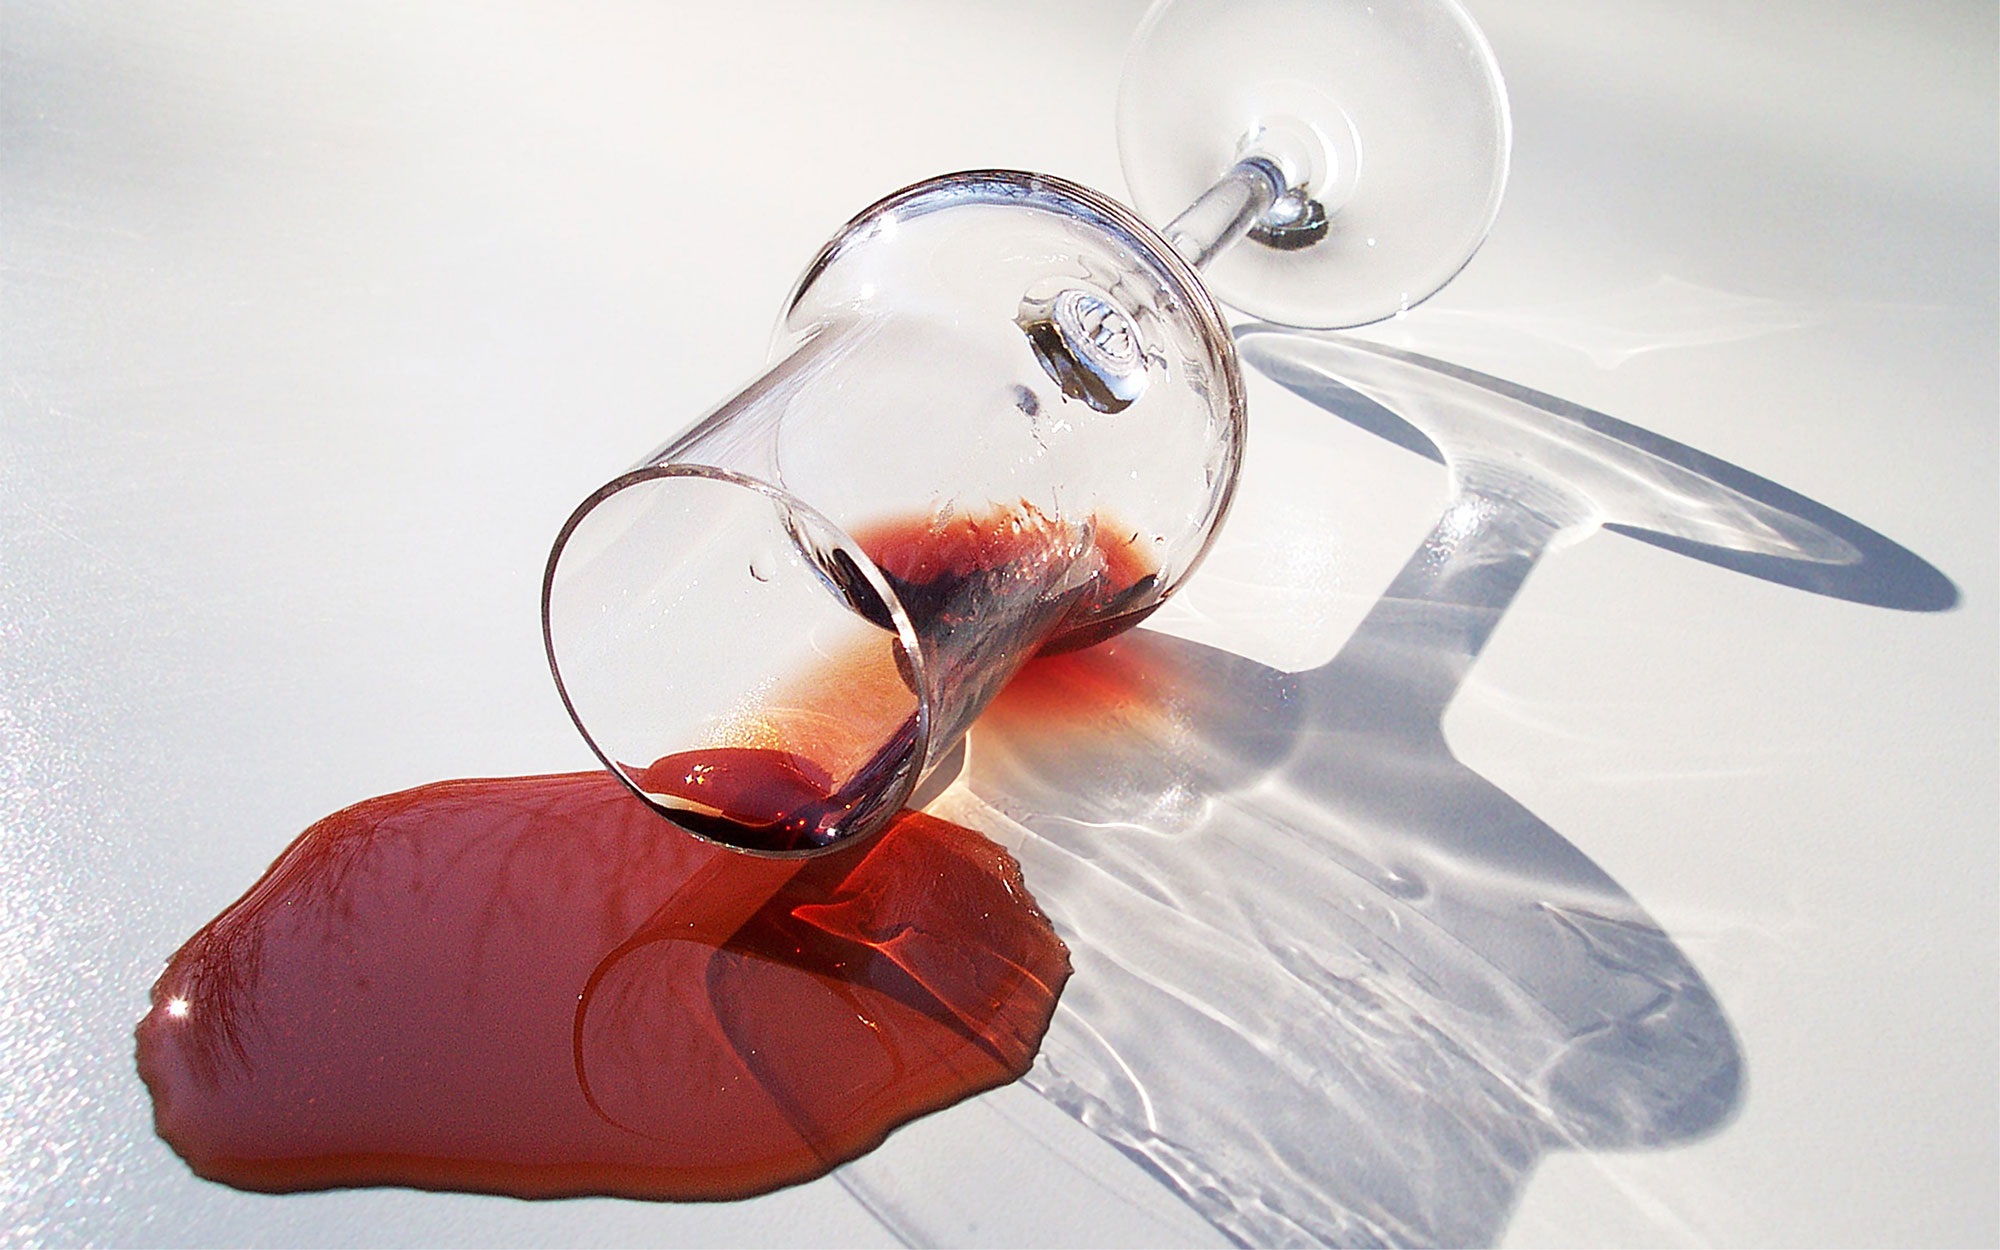 How To Remove A Red Wine Stain